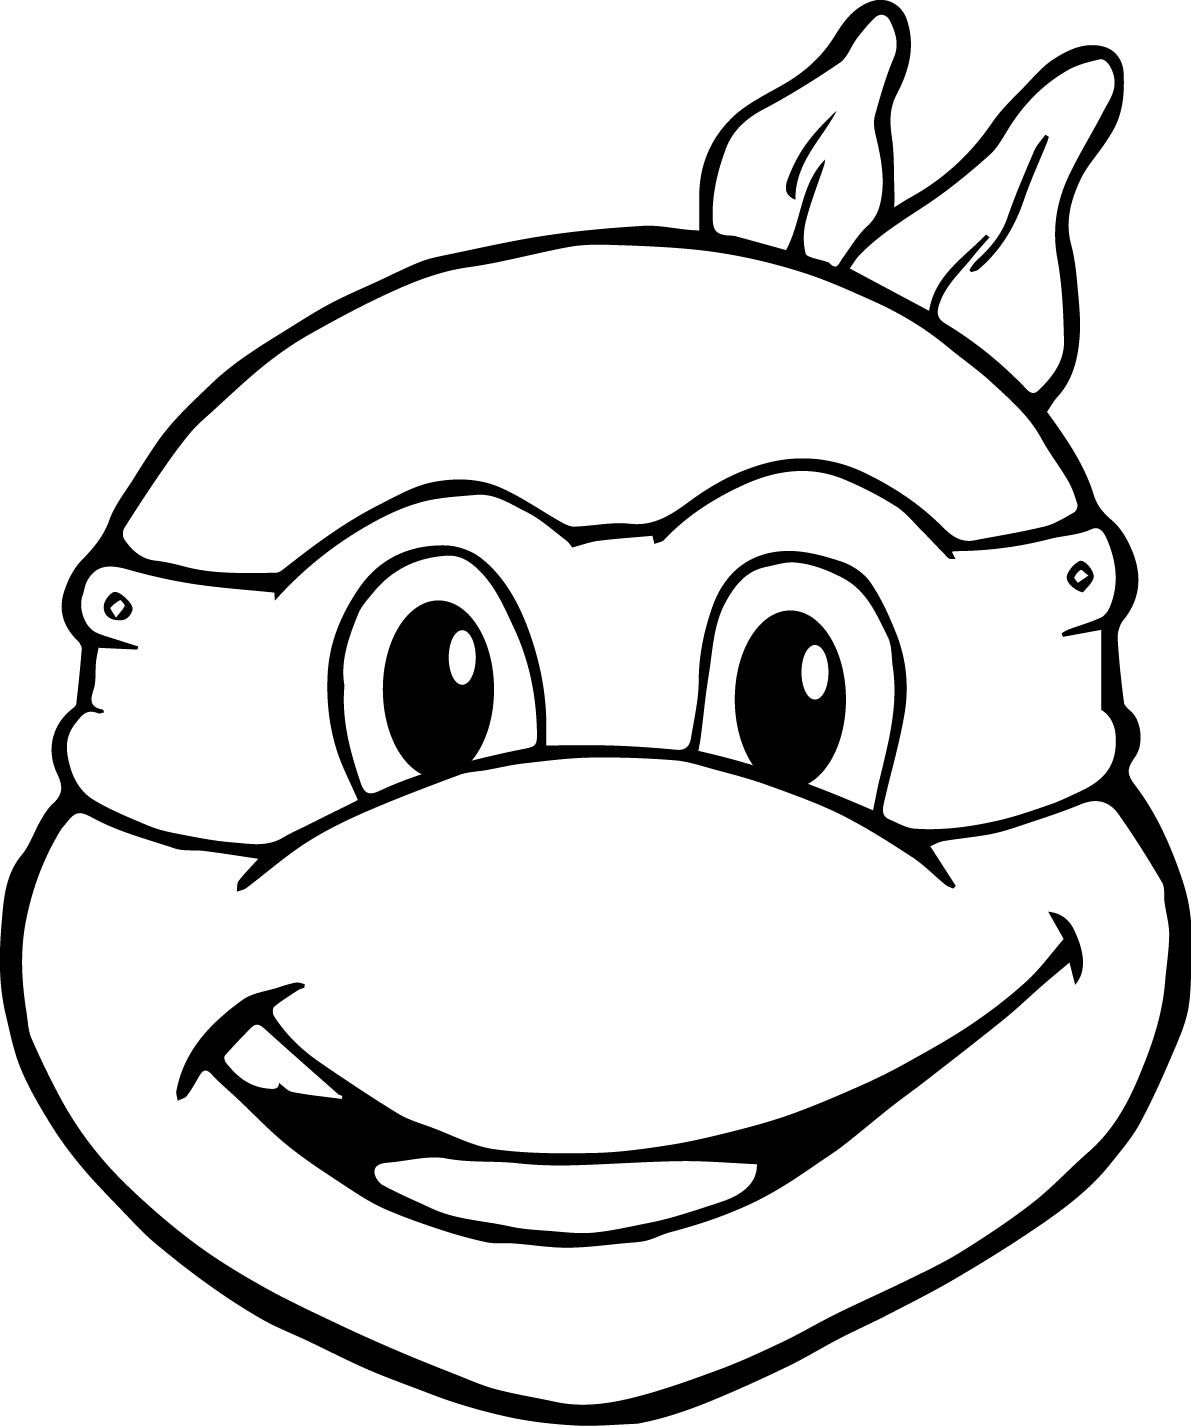 Ninja Turtles Coloring Pages Head To Head